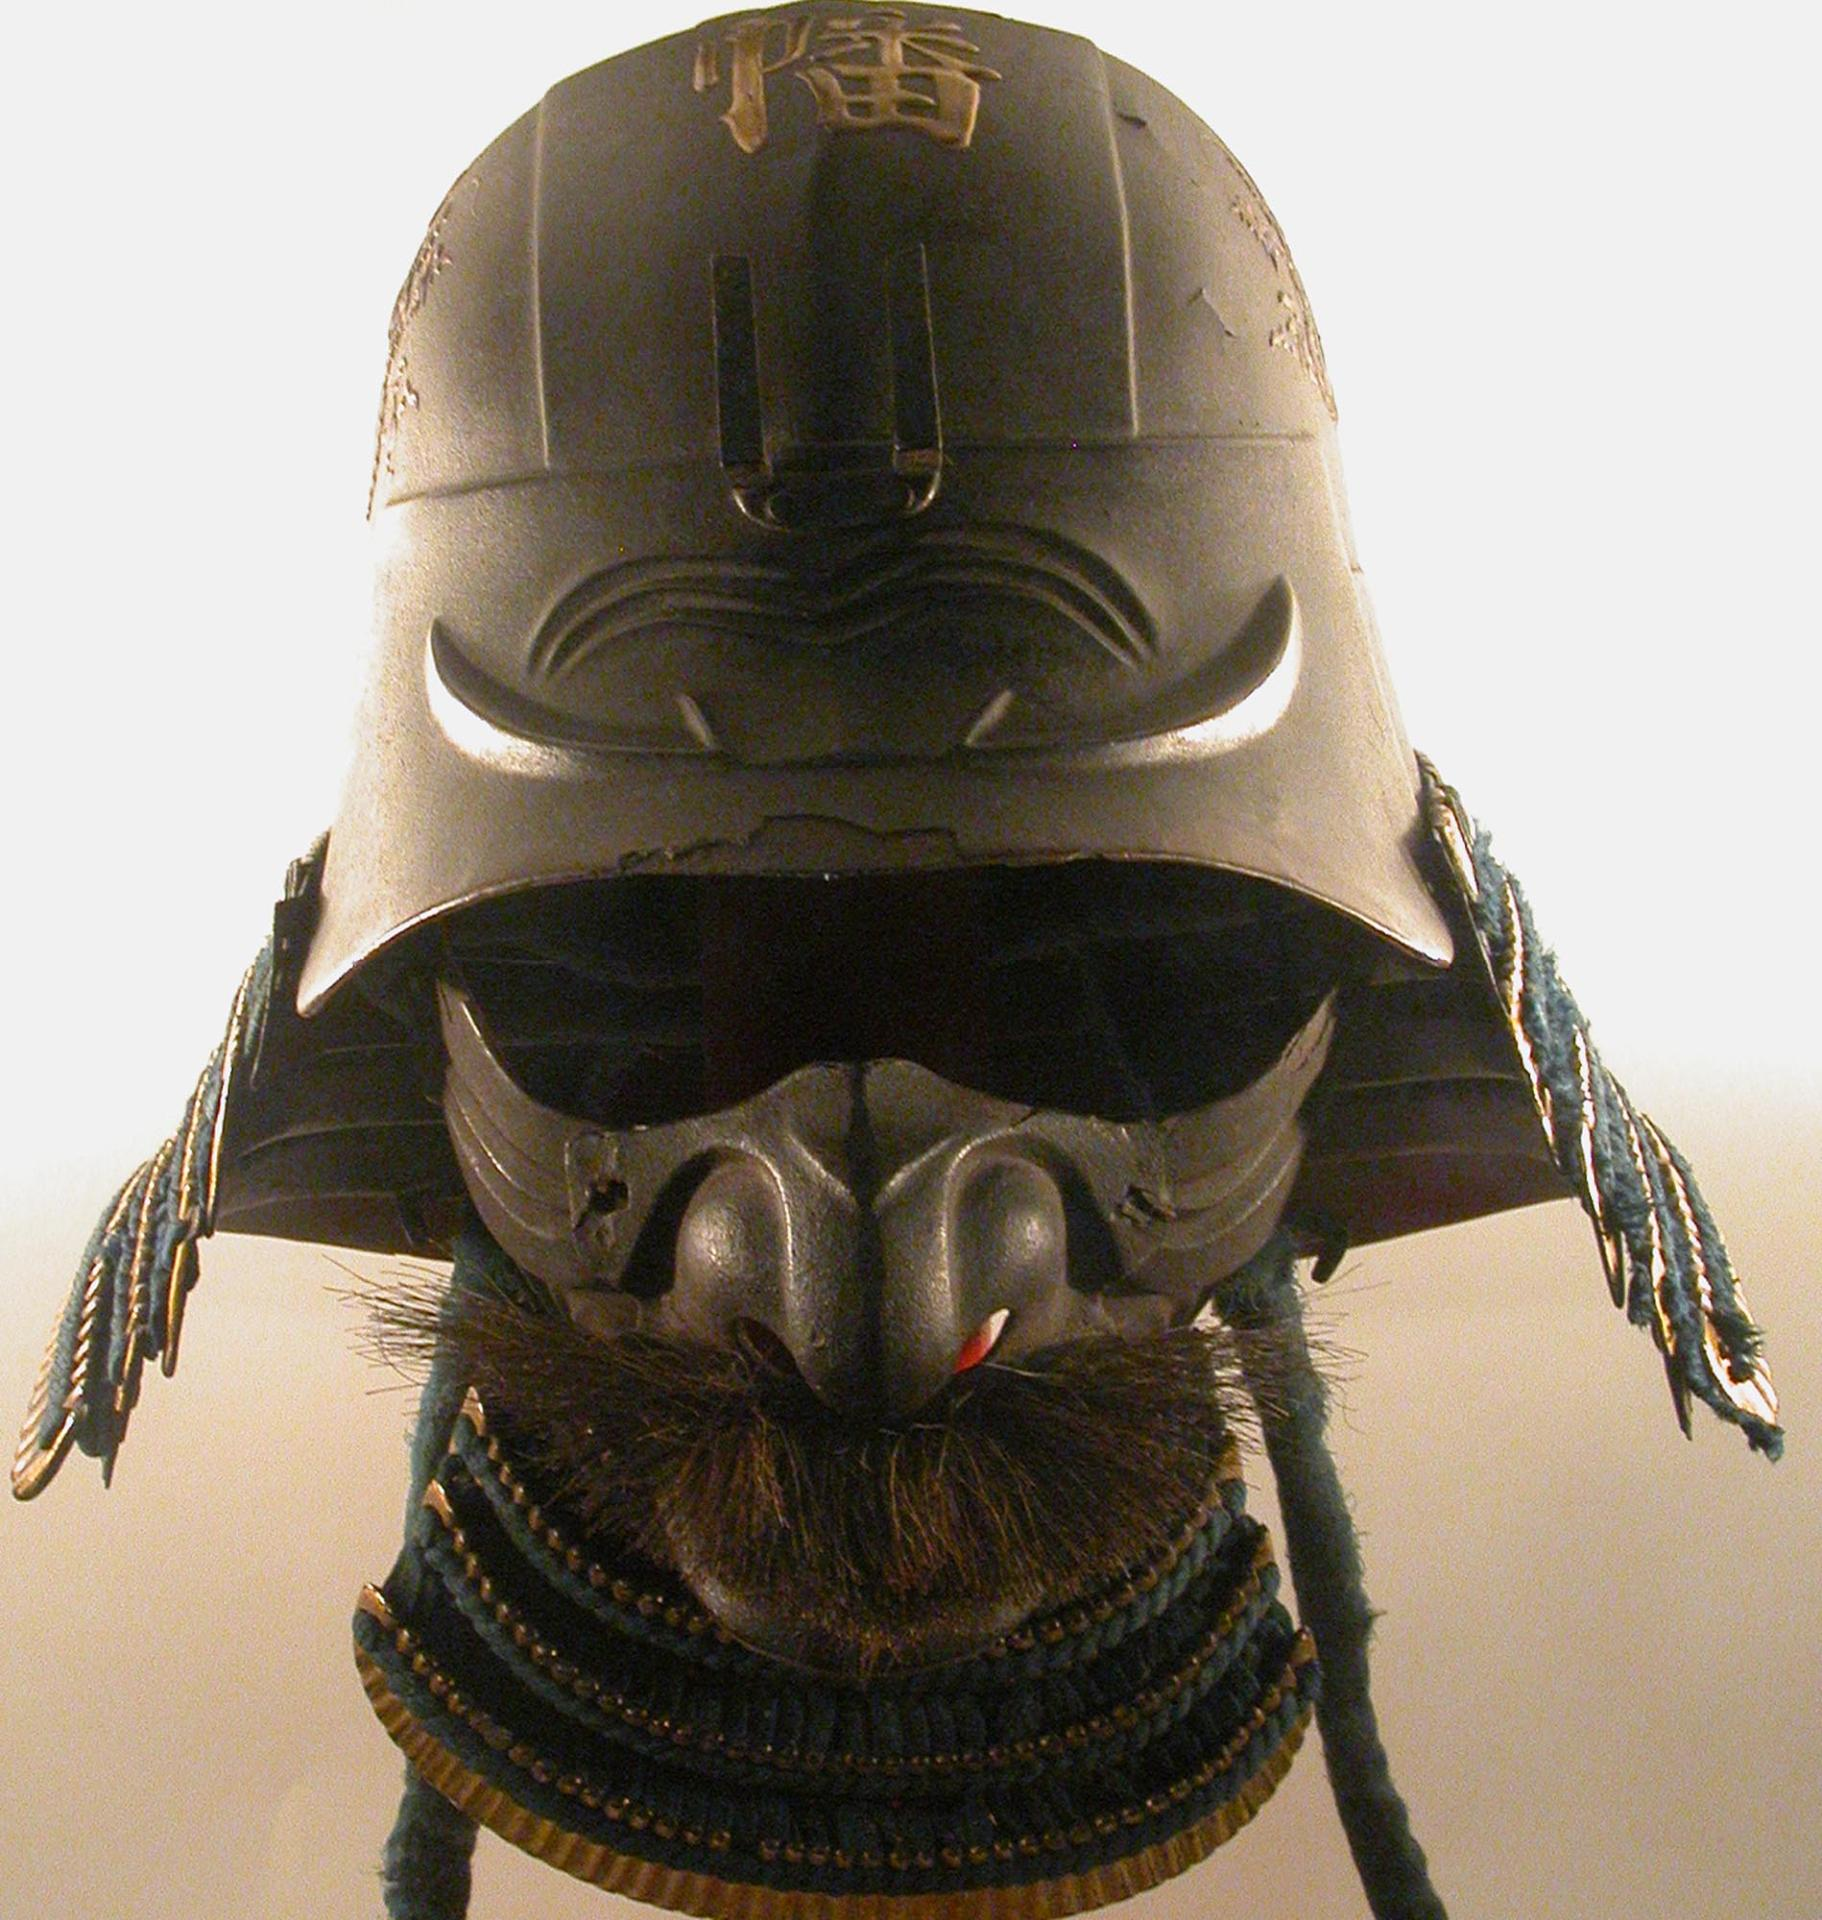 Samurai Helmet The Stirling Smith Art Gallery And Museum